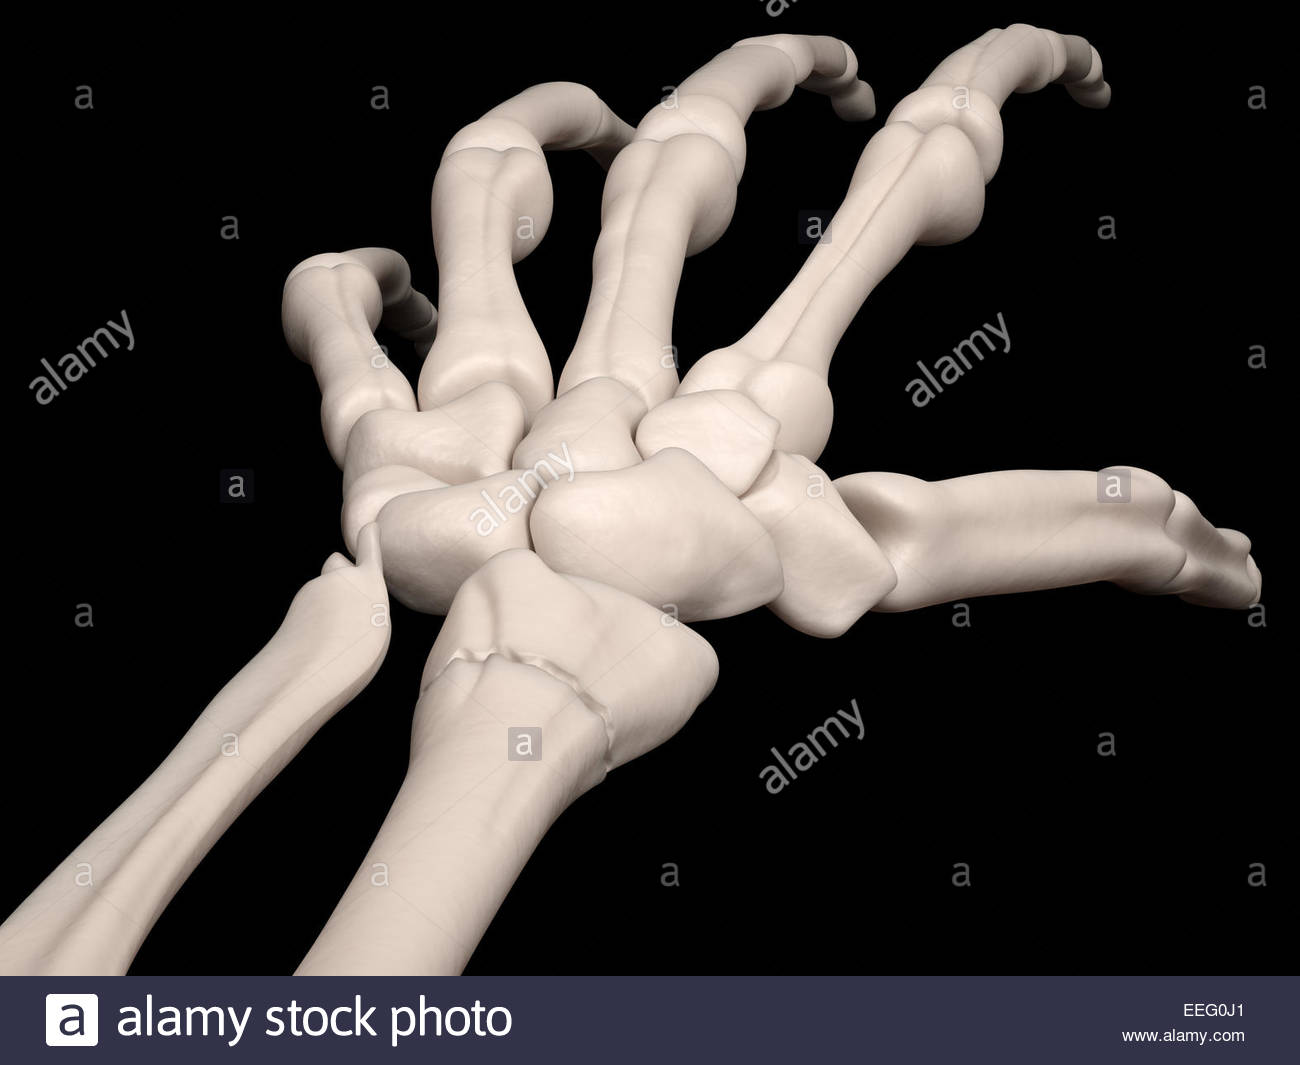 Digital medical illustration depicting an extra-articular, nondisplaced distal radius fracture. - Stock Image